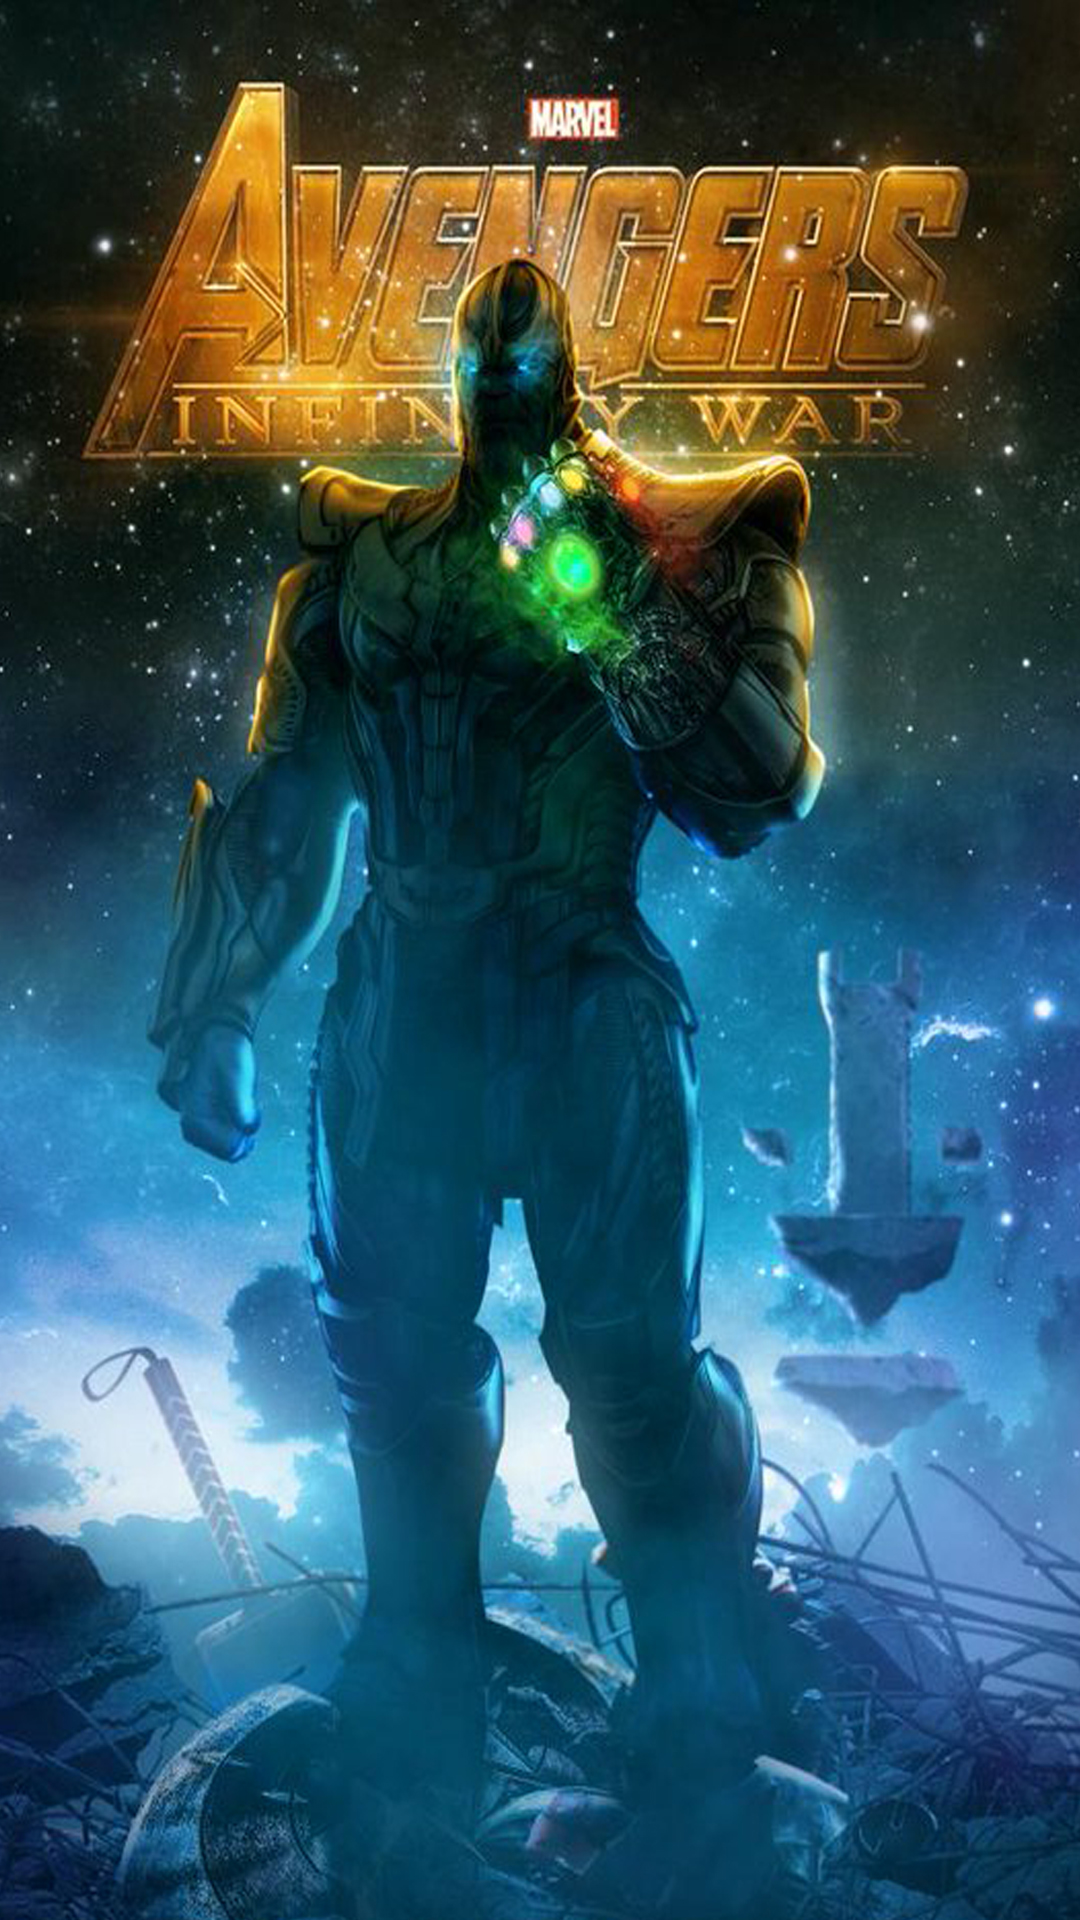 iPhone wallpaper avengers infinity war thanos Avengers: Infinity War